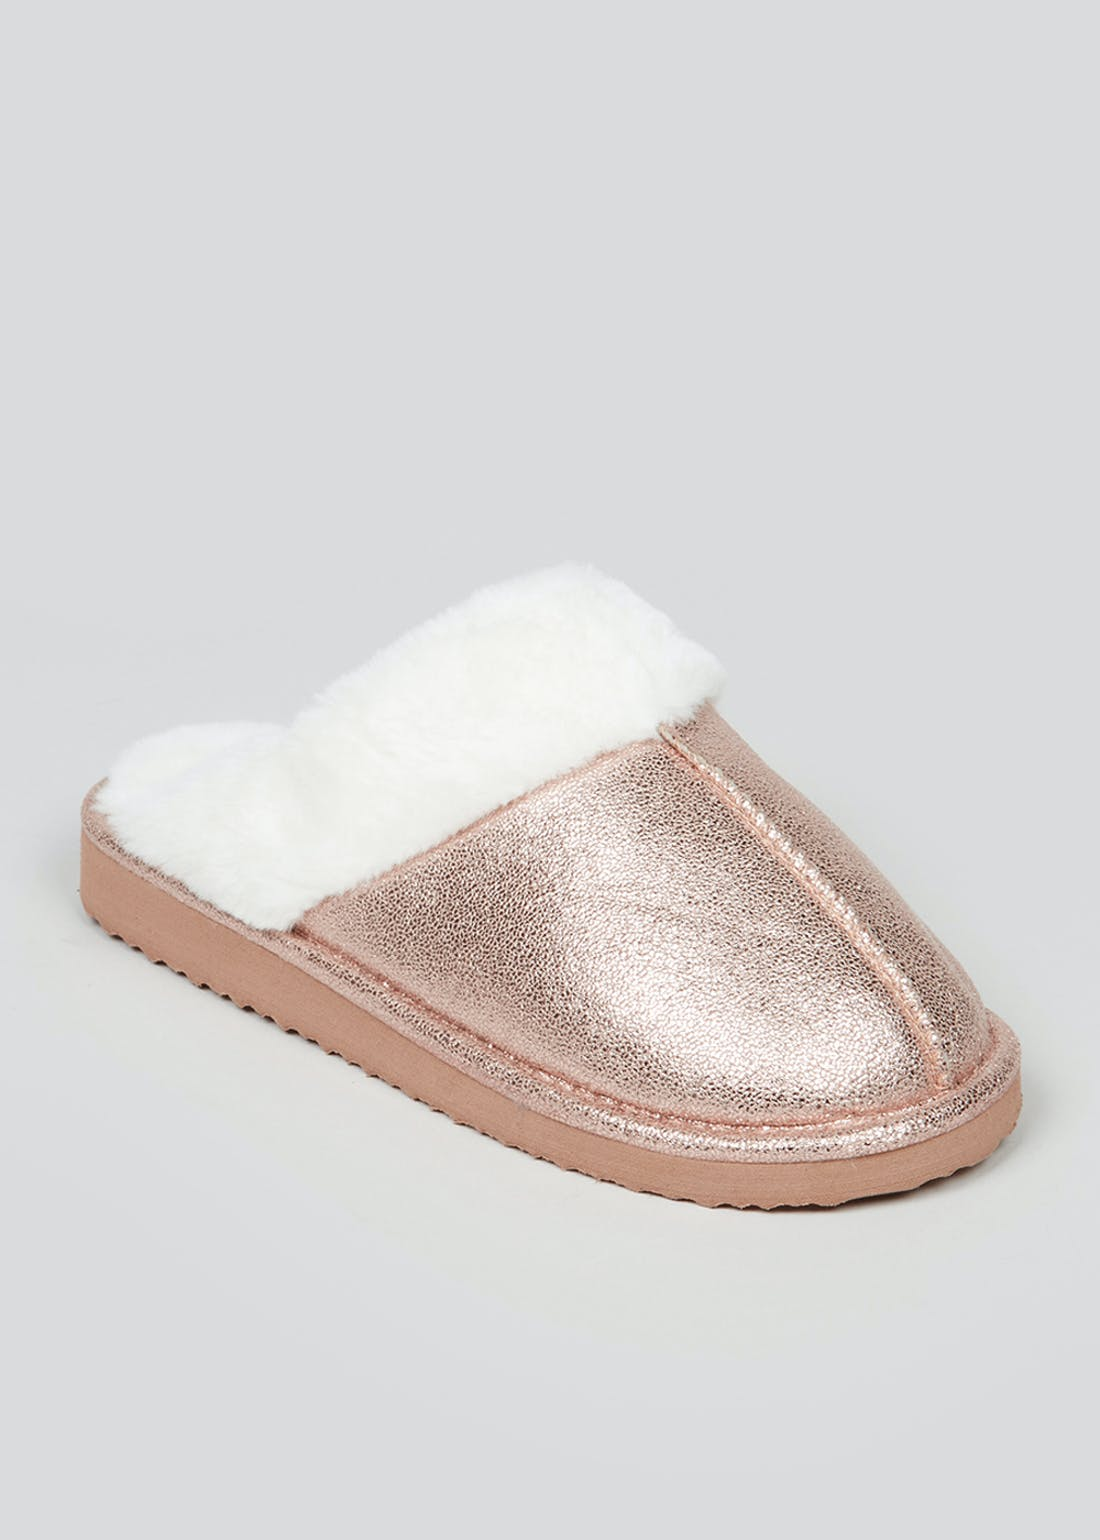 Gold Mule Slippers in Gift Bag